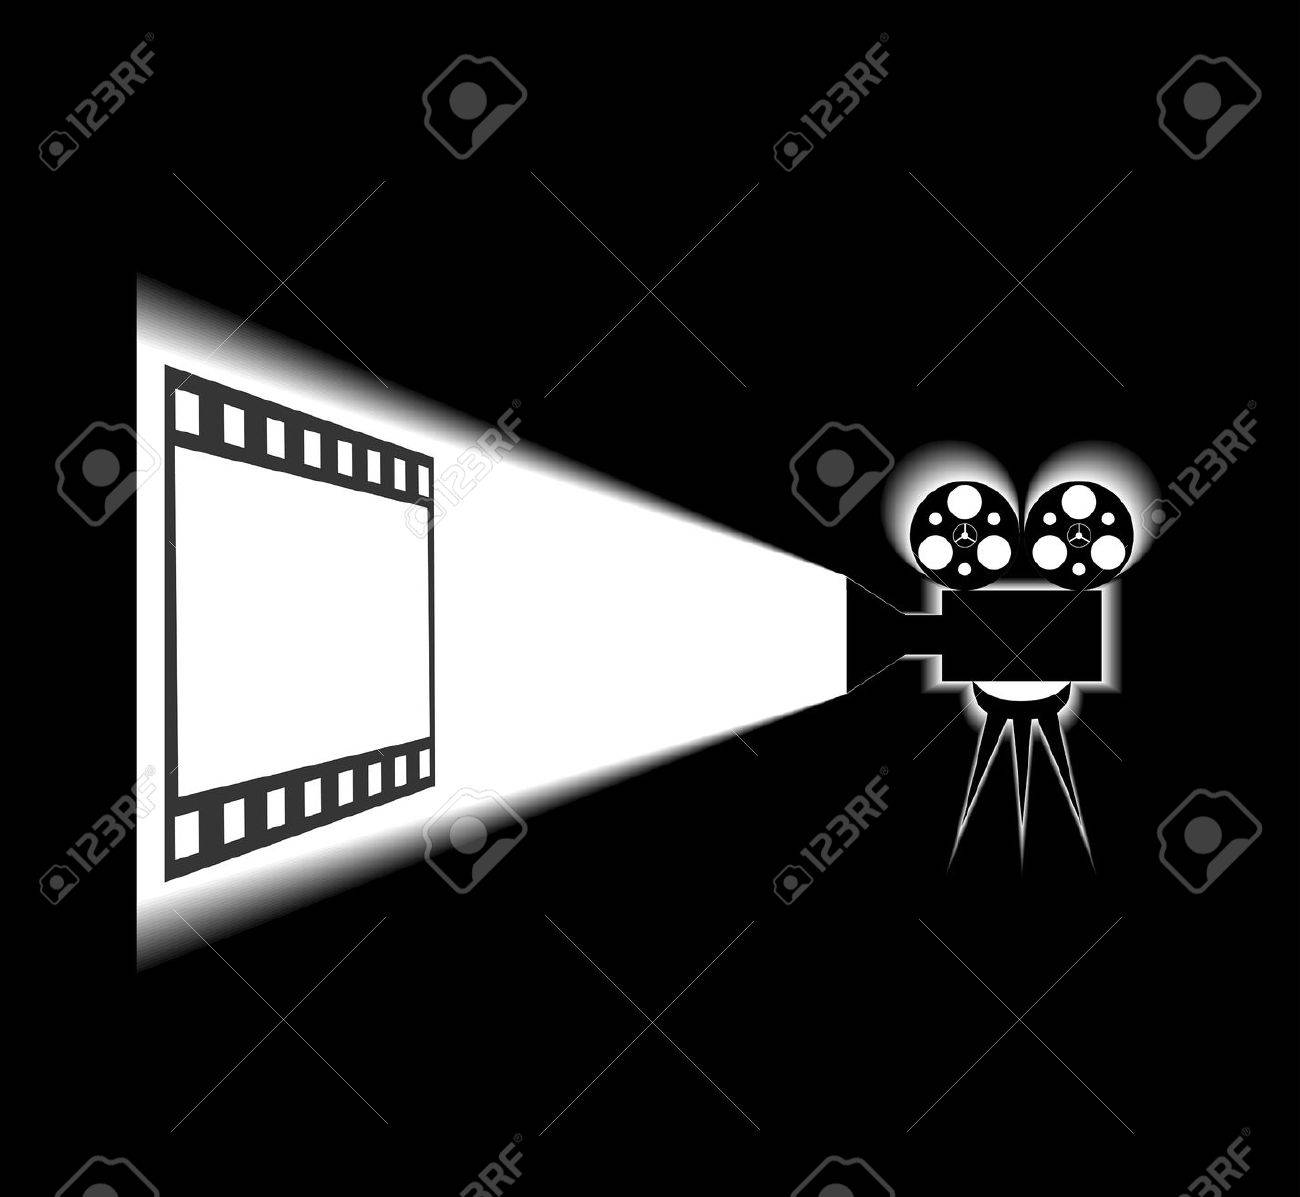 Movie projector and screen are shown in the picture. Stock Vector - 9050913